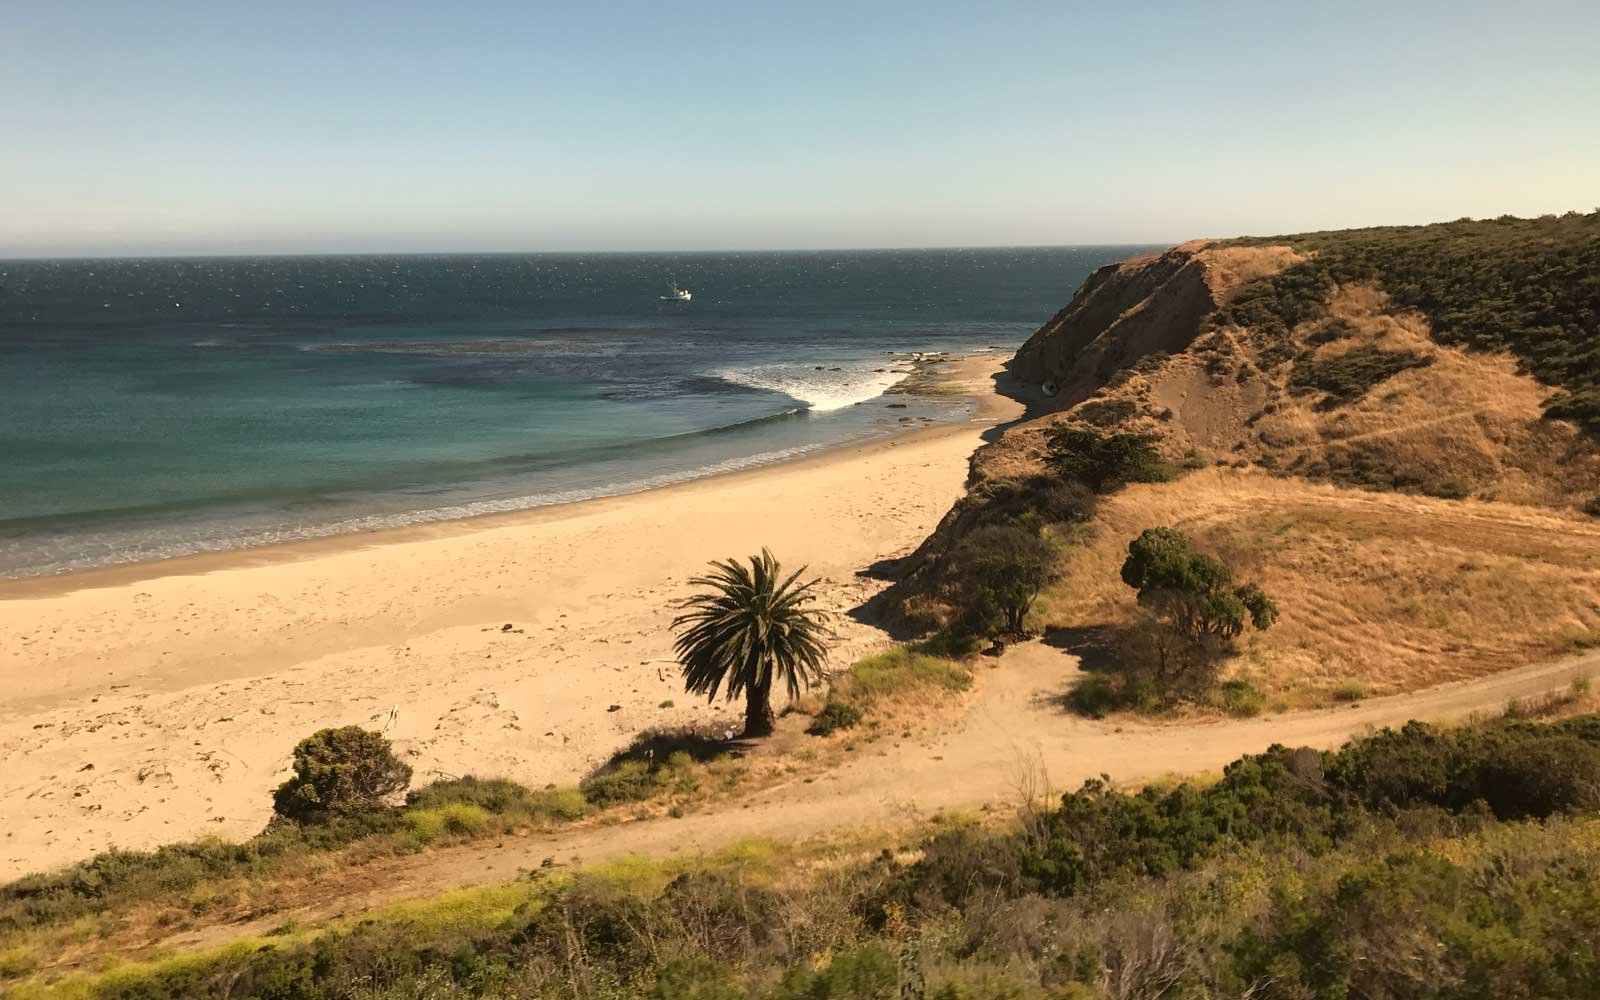 Pacific Coast Highway by Amtrak Train